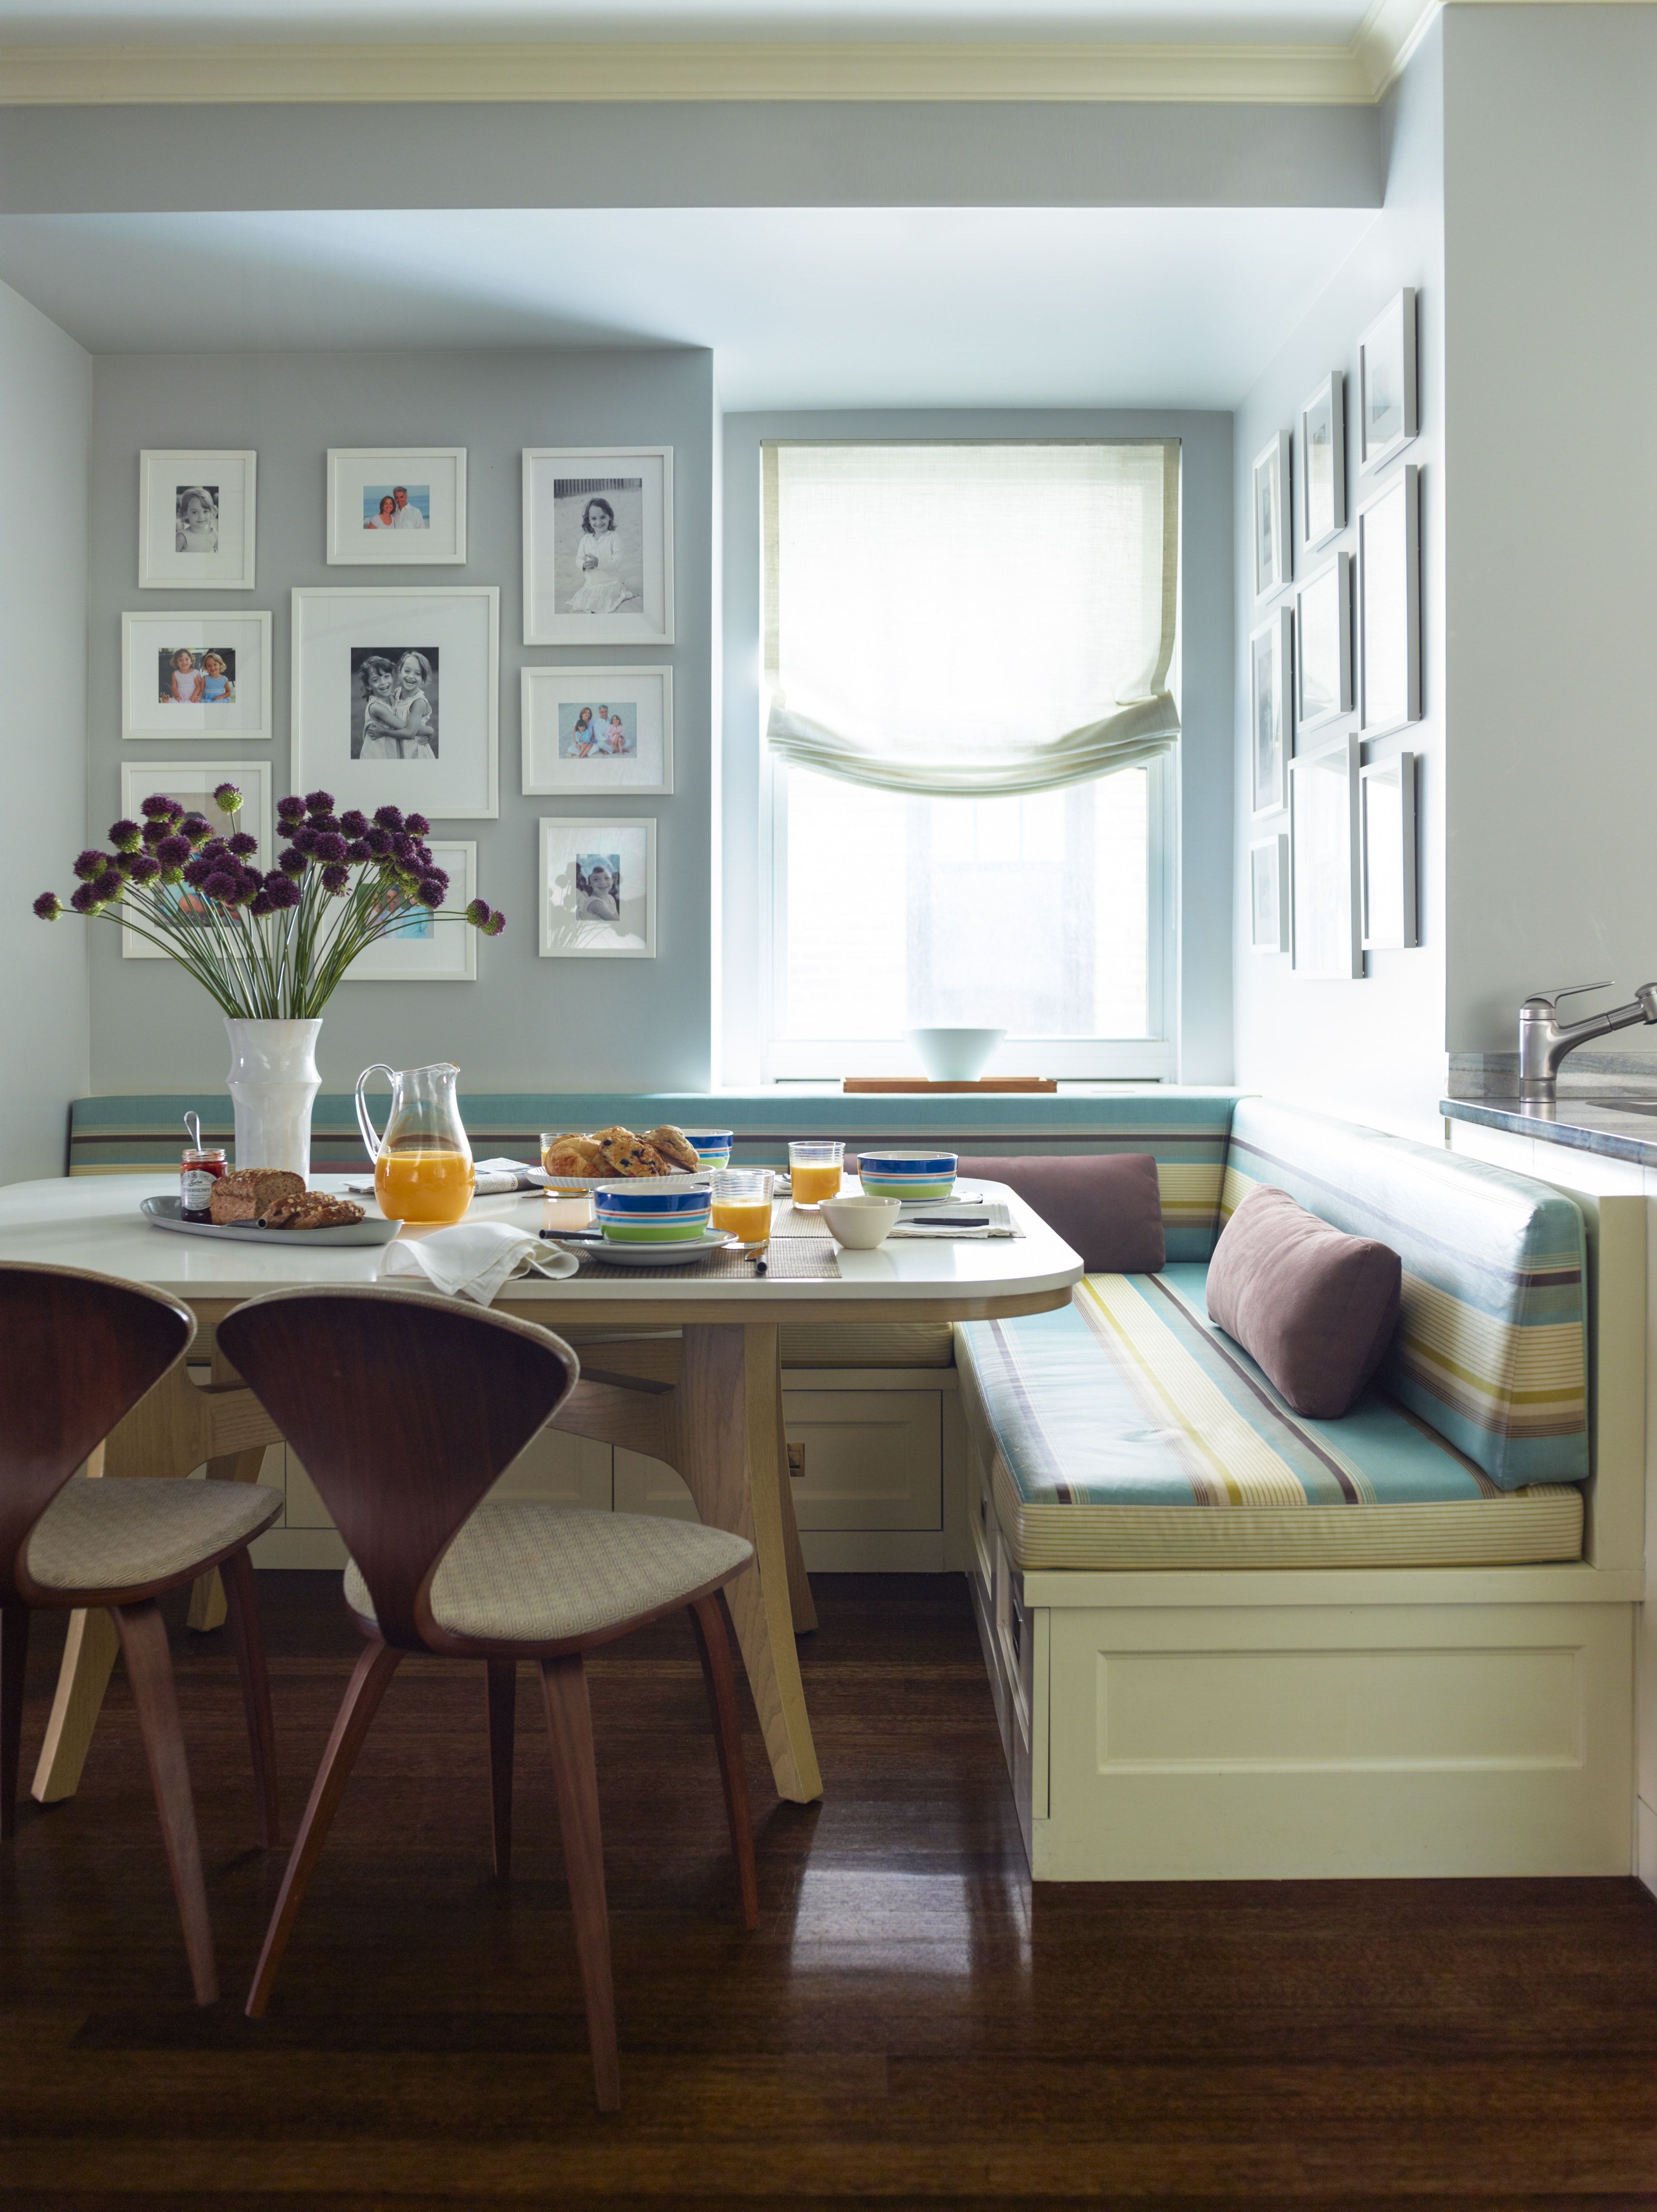 Upper East Side Breakfast Nook With Striped Built In Banquette And Gallery Walls In 2020 Dining Room Bench Seating Dining Room Remodel Living Room Bench